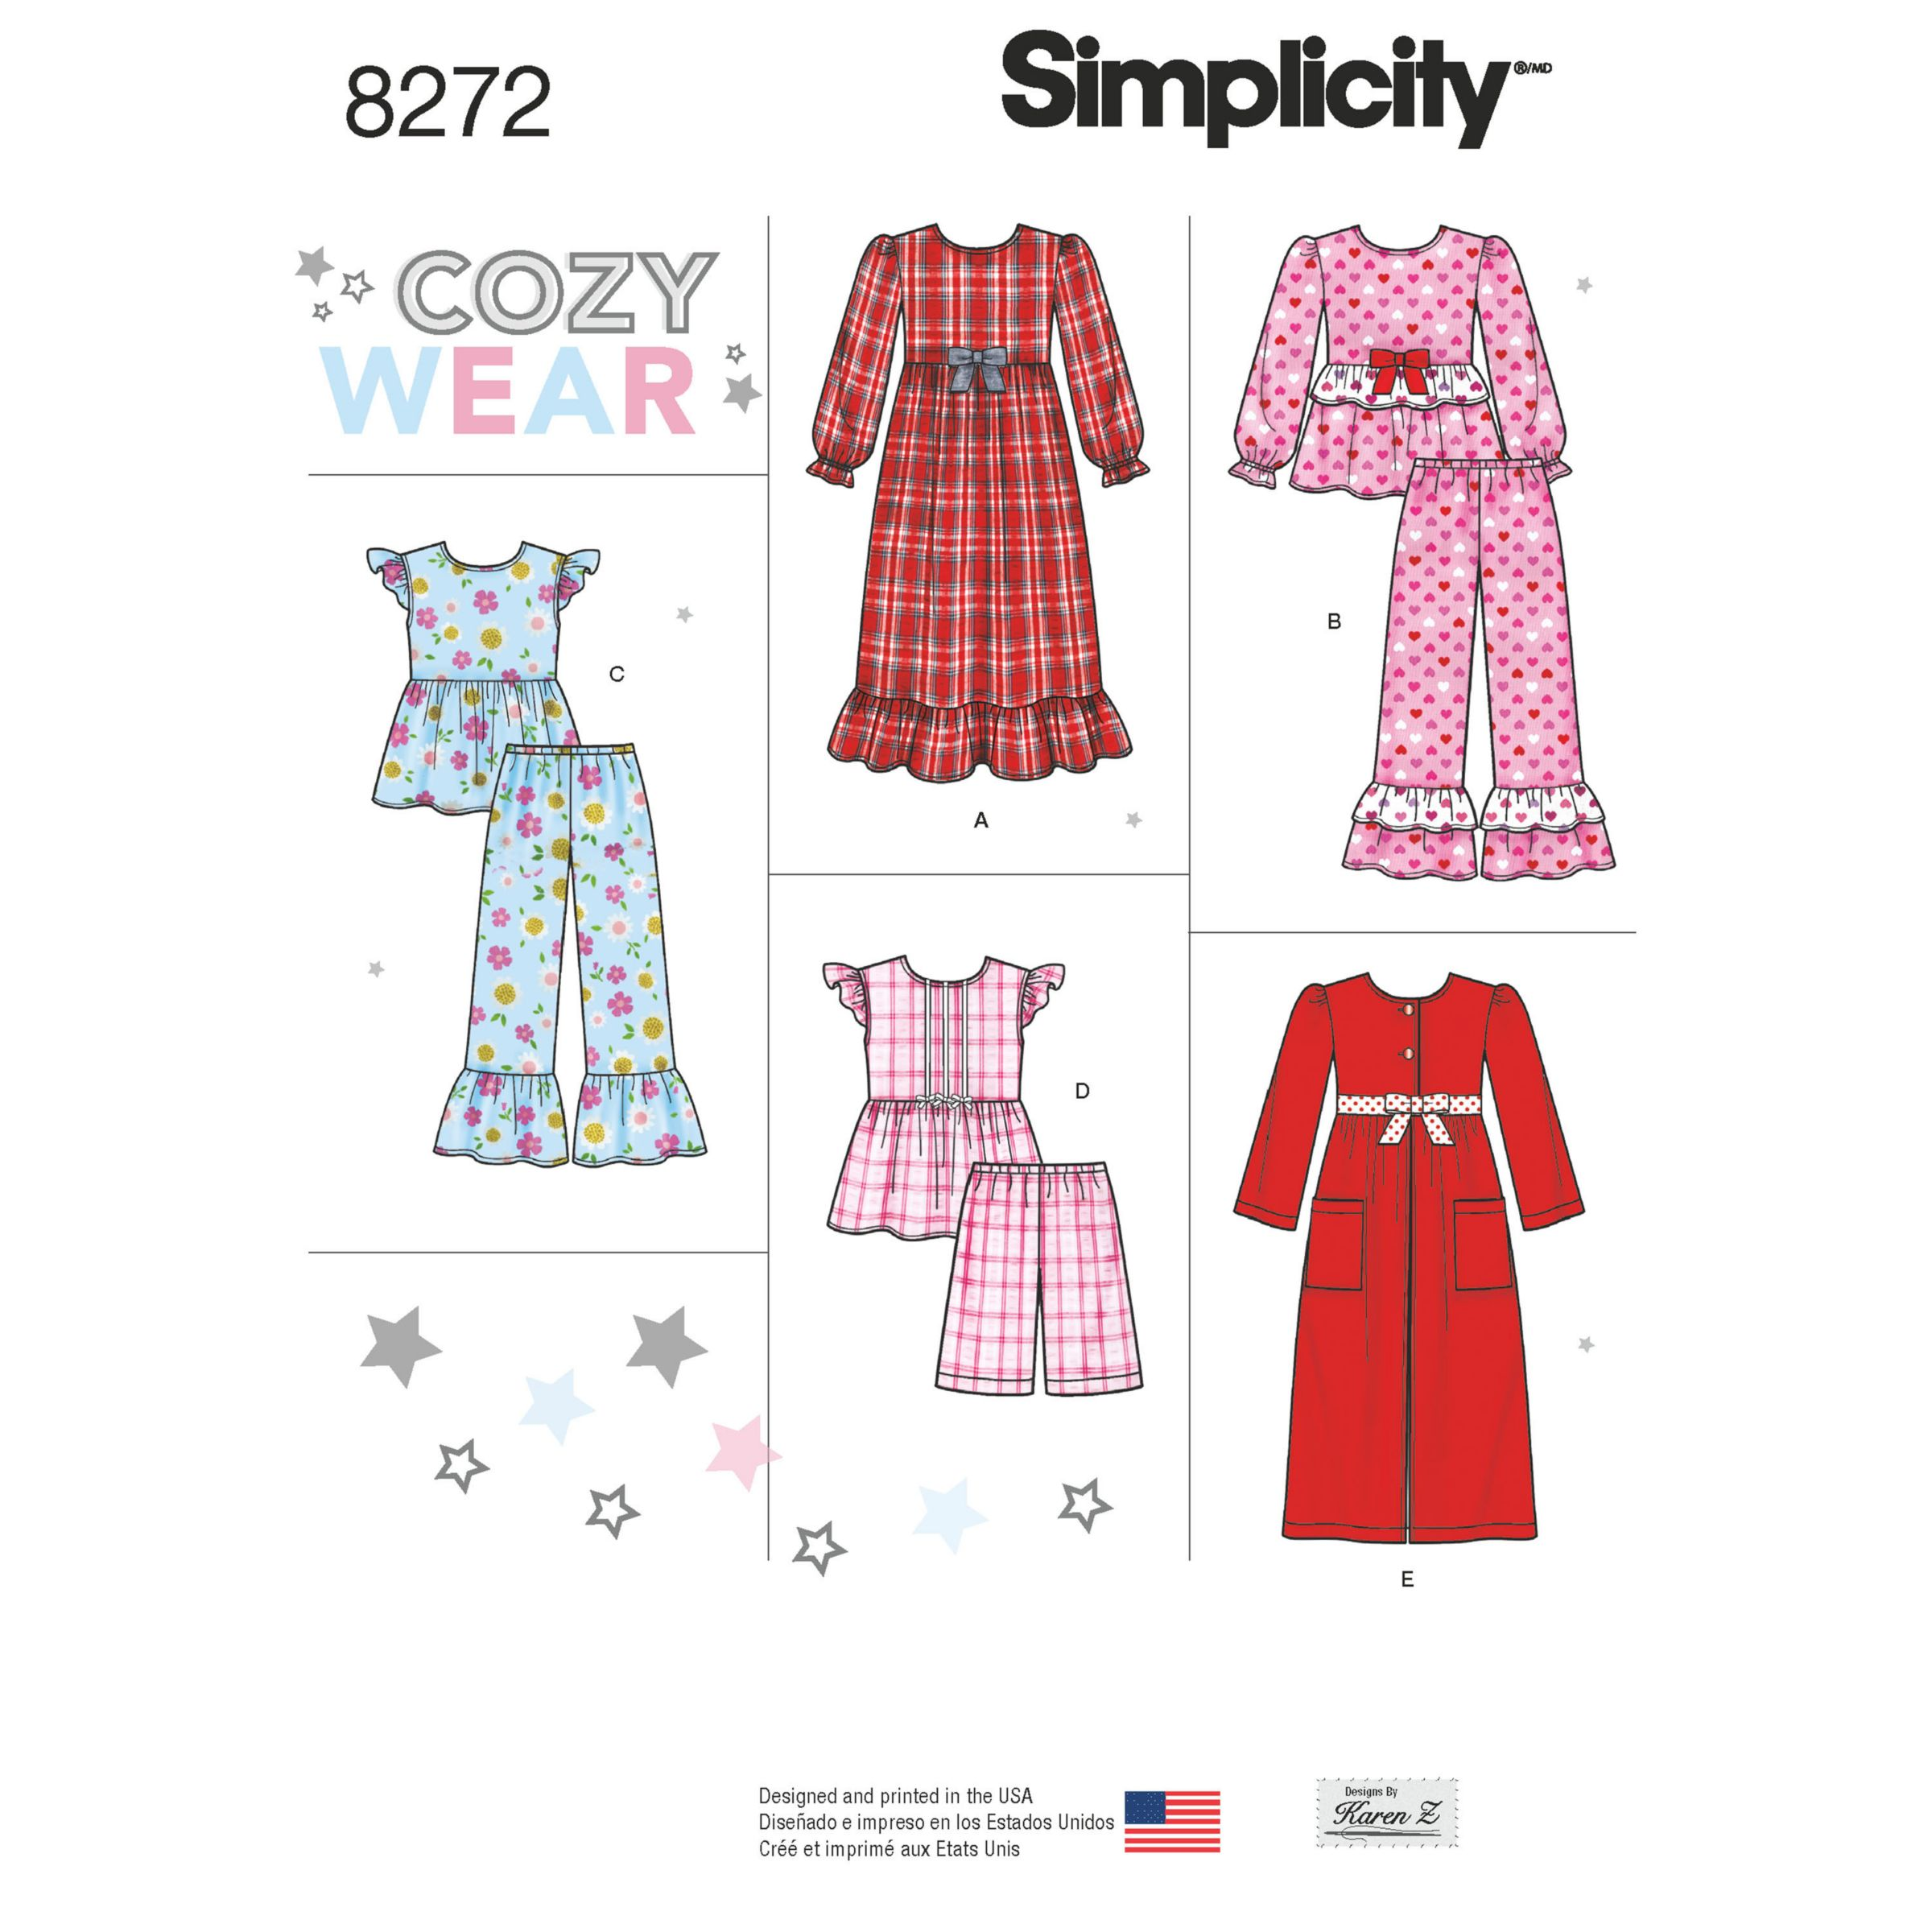 Simplicity Simplicity Children's Sleepwear and Robe Sewing Pattern, 8272